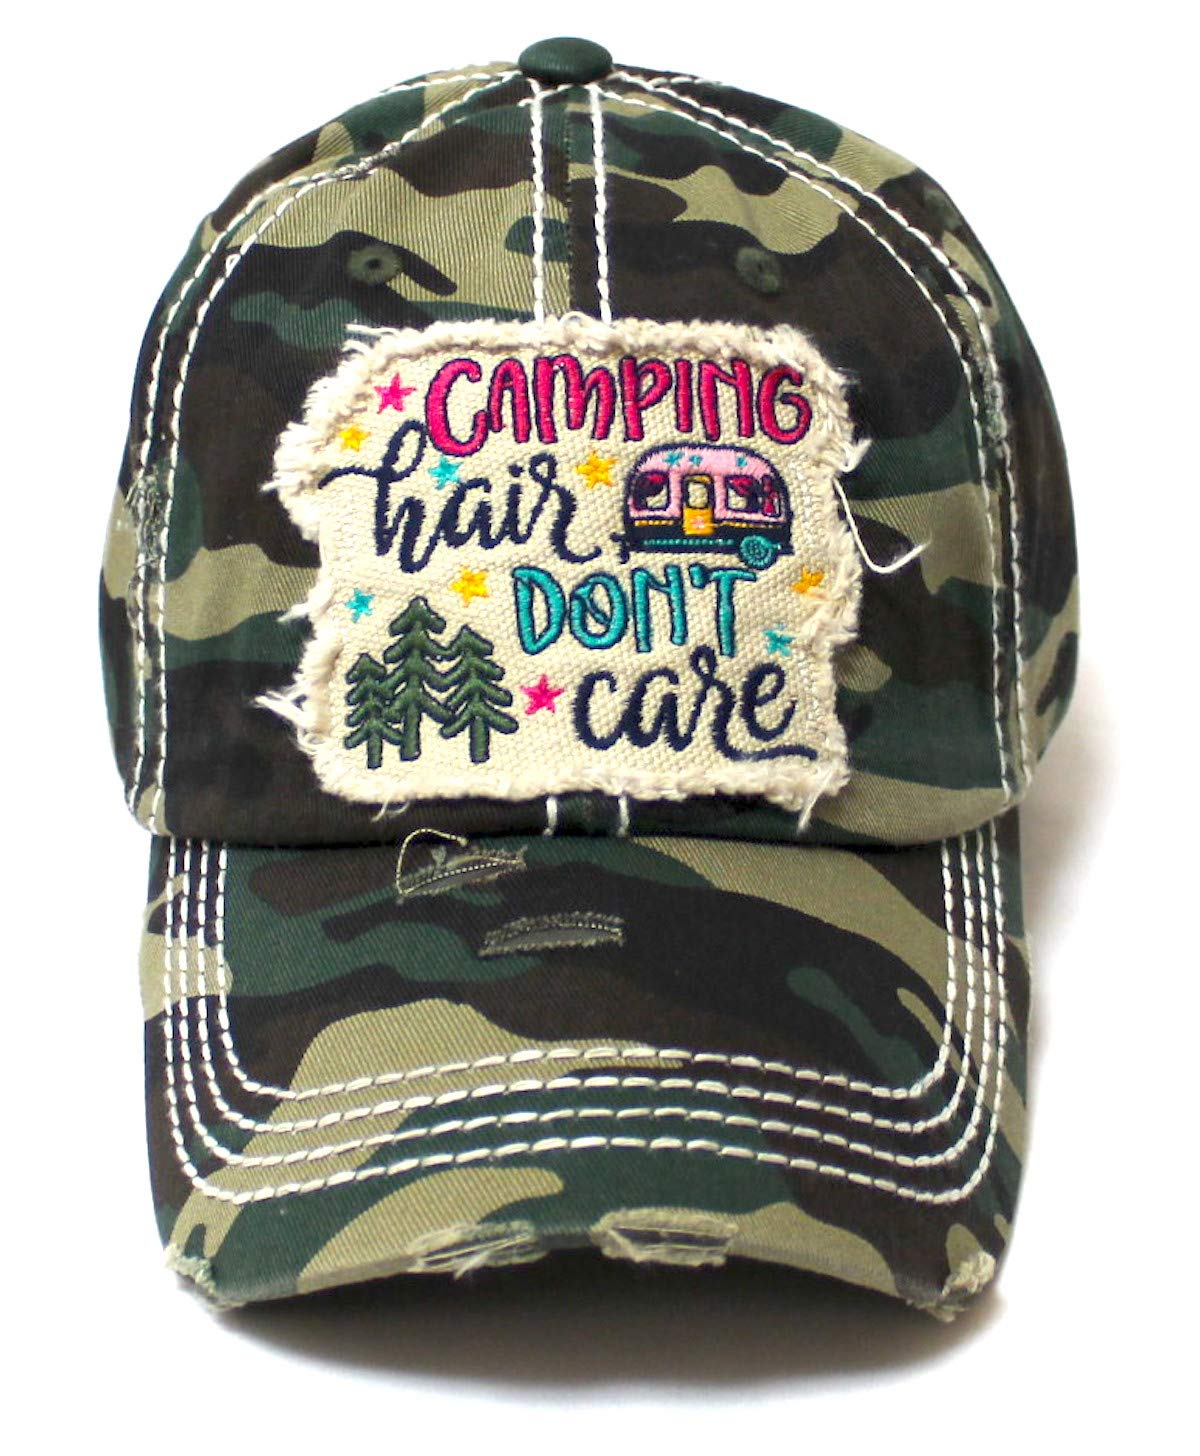 CAPS 'N VINTAGE Women's Baseball Cap Camping Hair Don't Care Patch Embroidery Monogram Hat, Army Camoflauge - Caps 'N Vintage